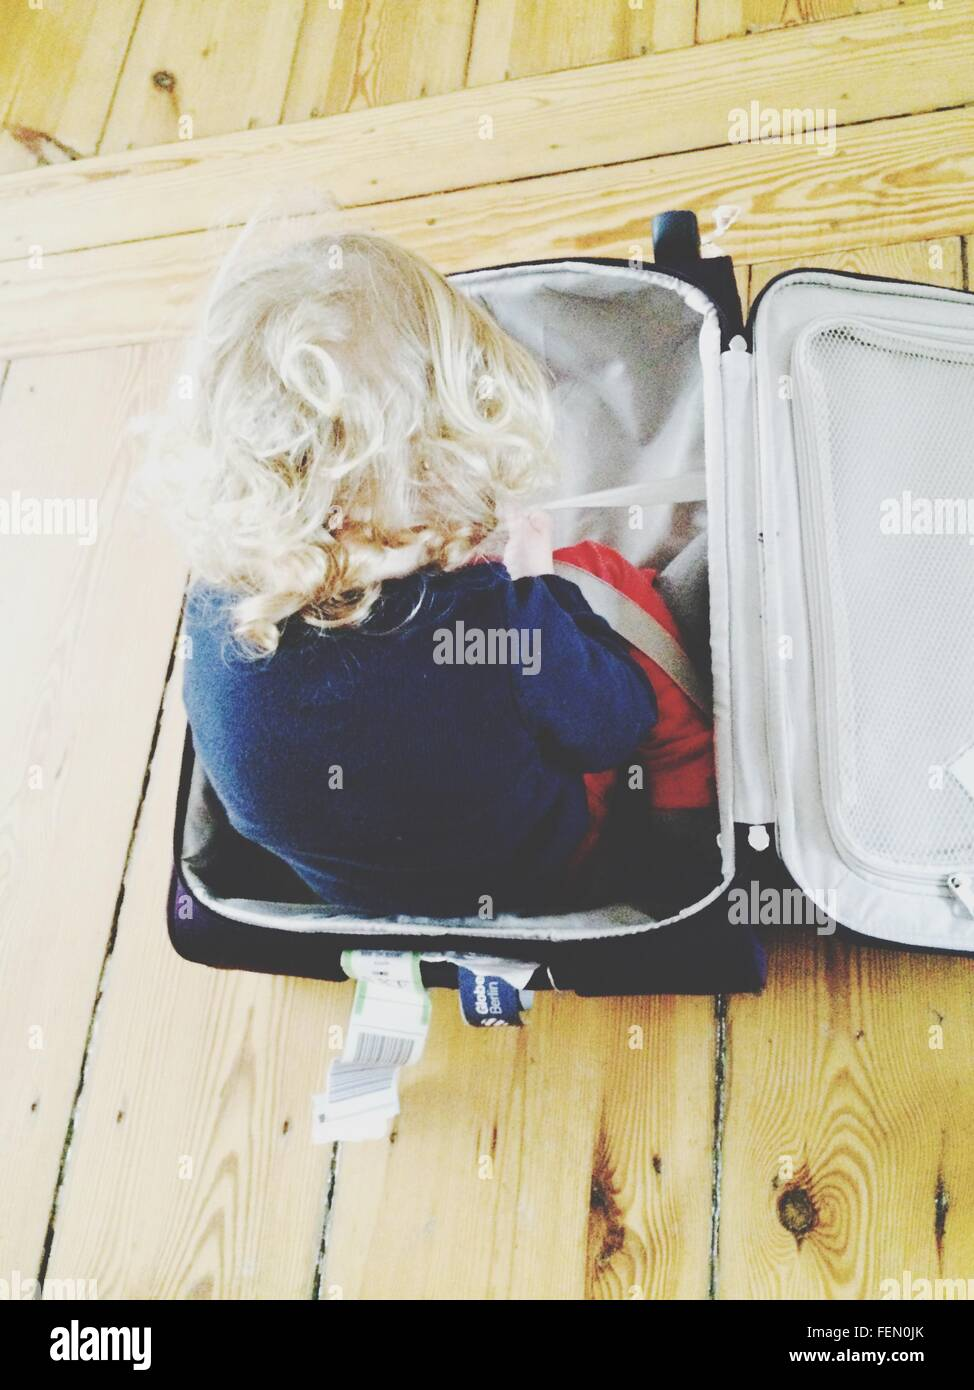 Rear View Of Girl In Suitcase At Home - Stock Image